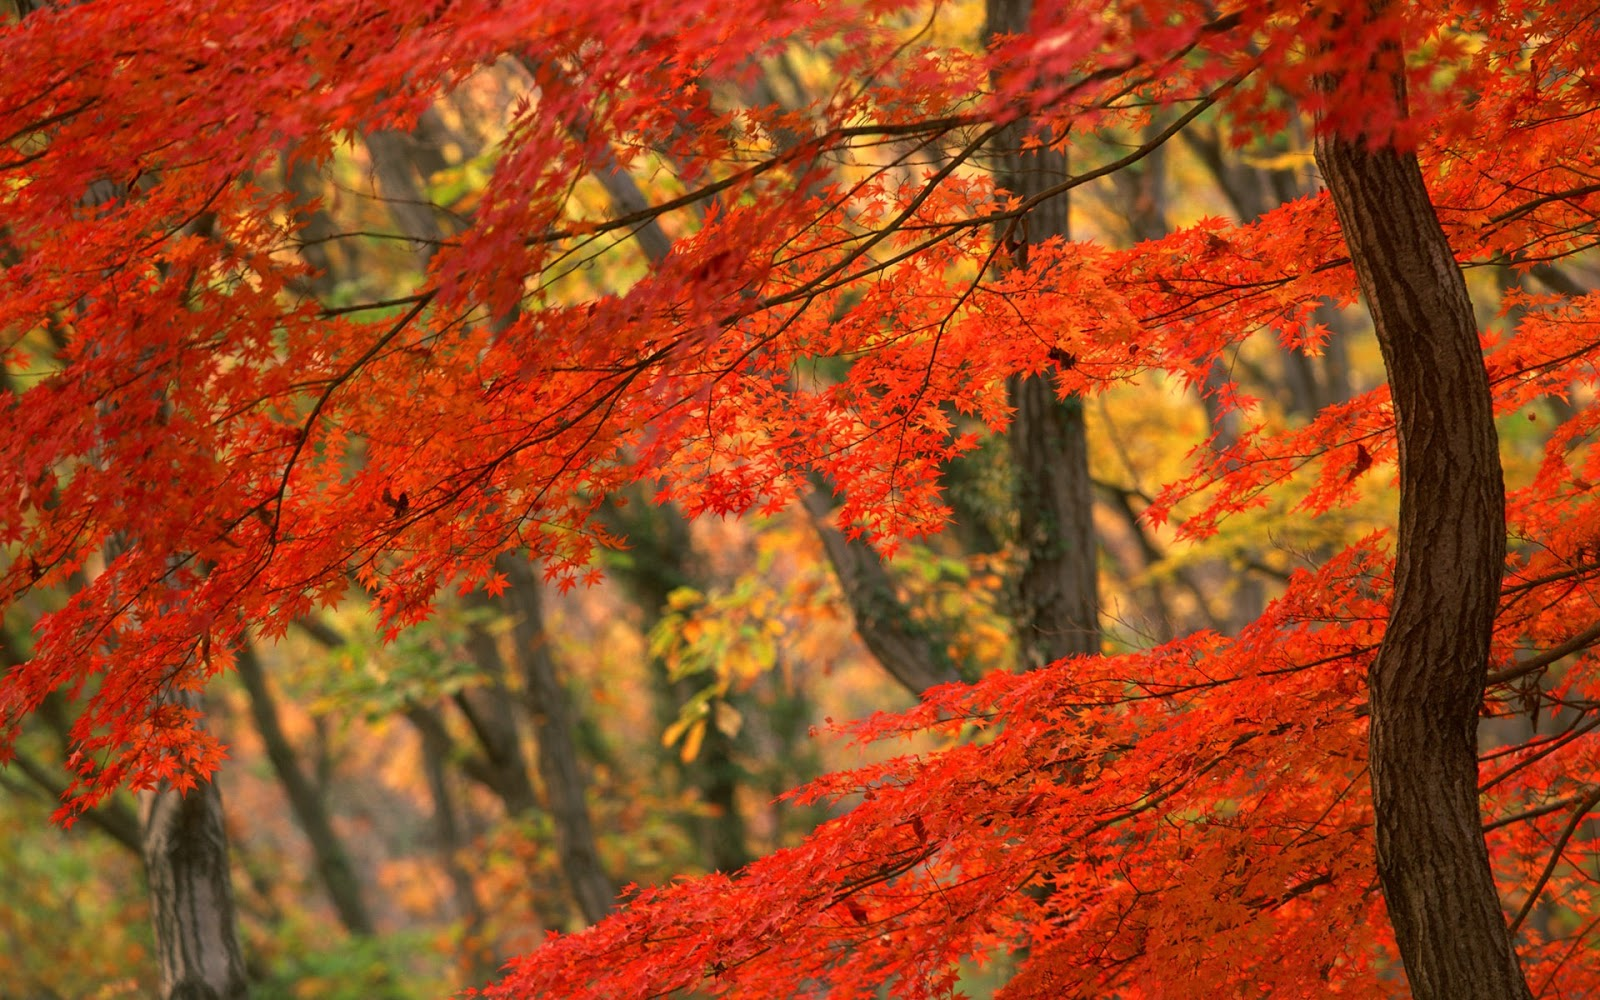 pemandangan: Autumn Leaves Wallpaper